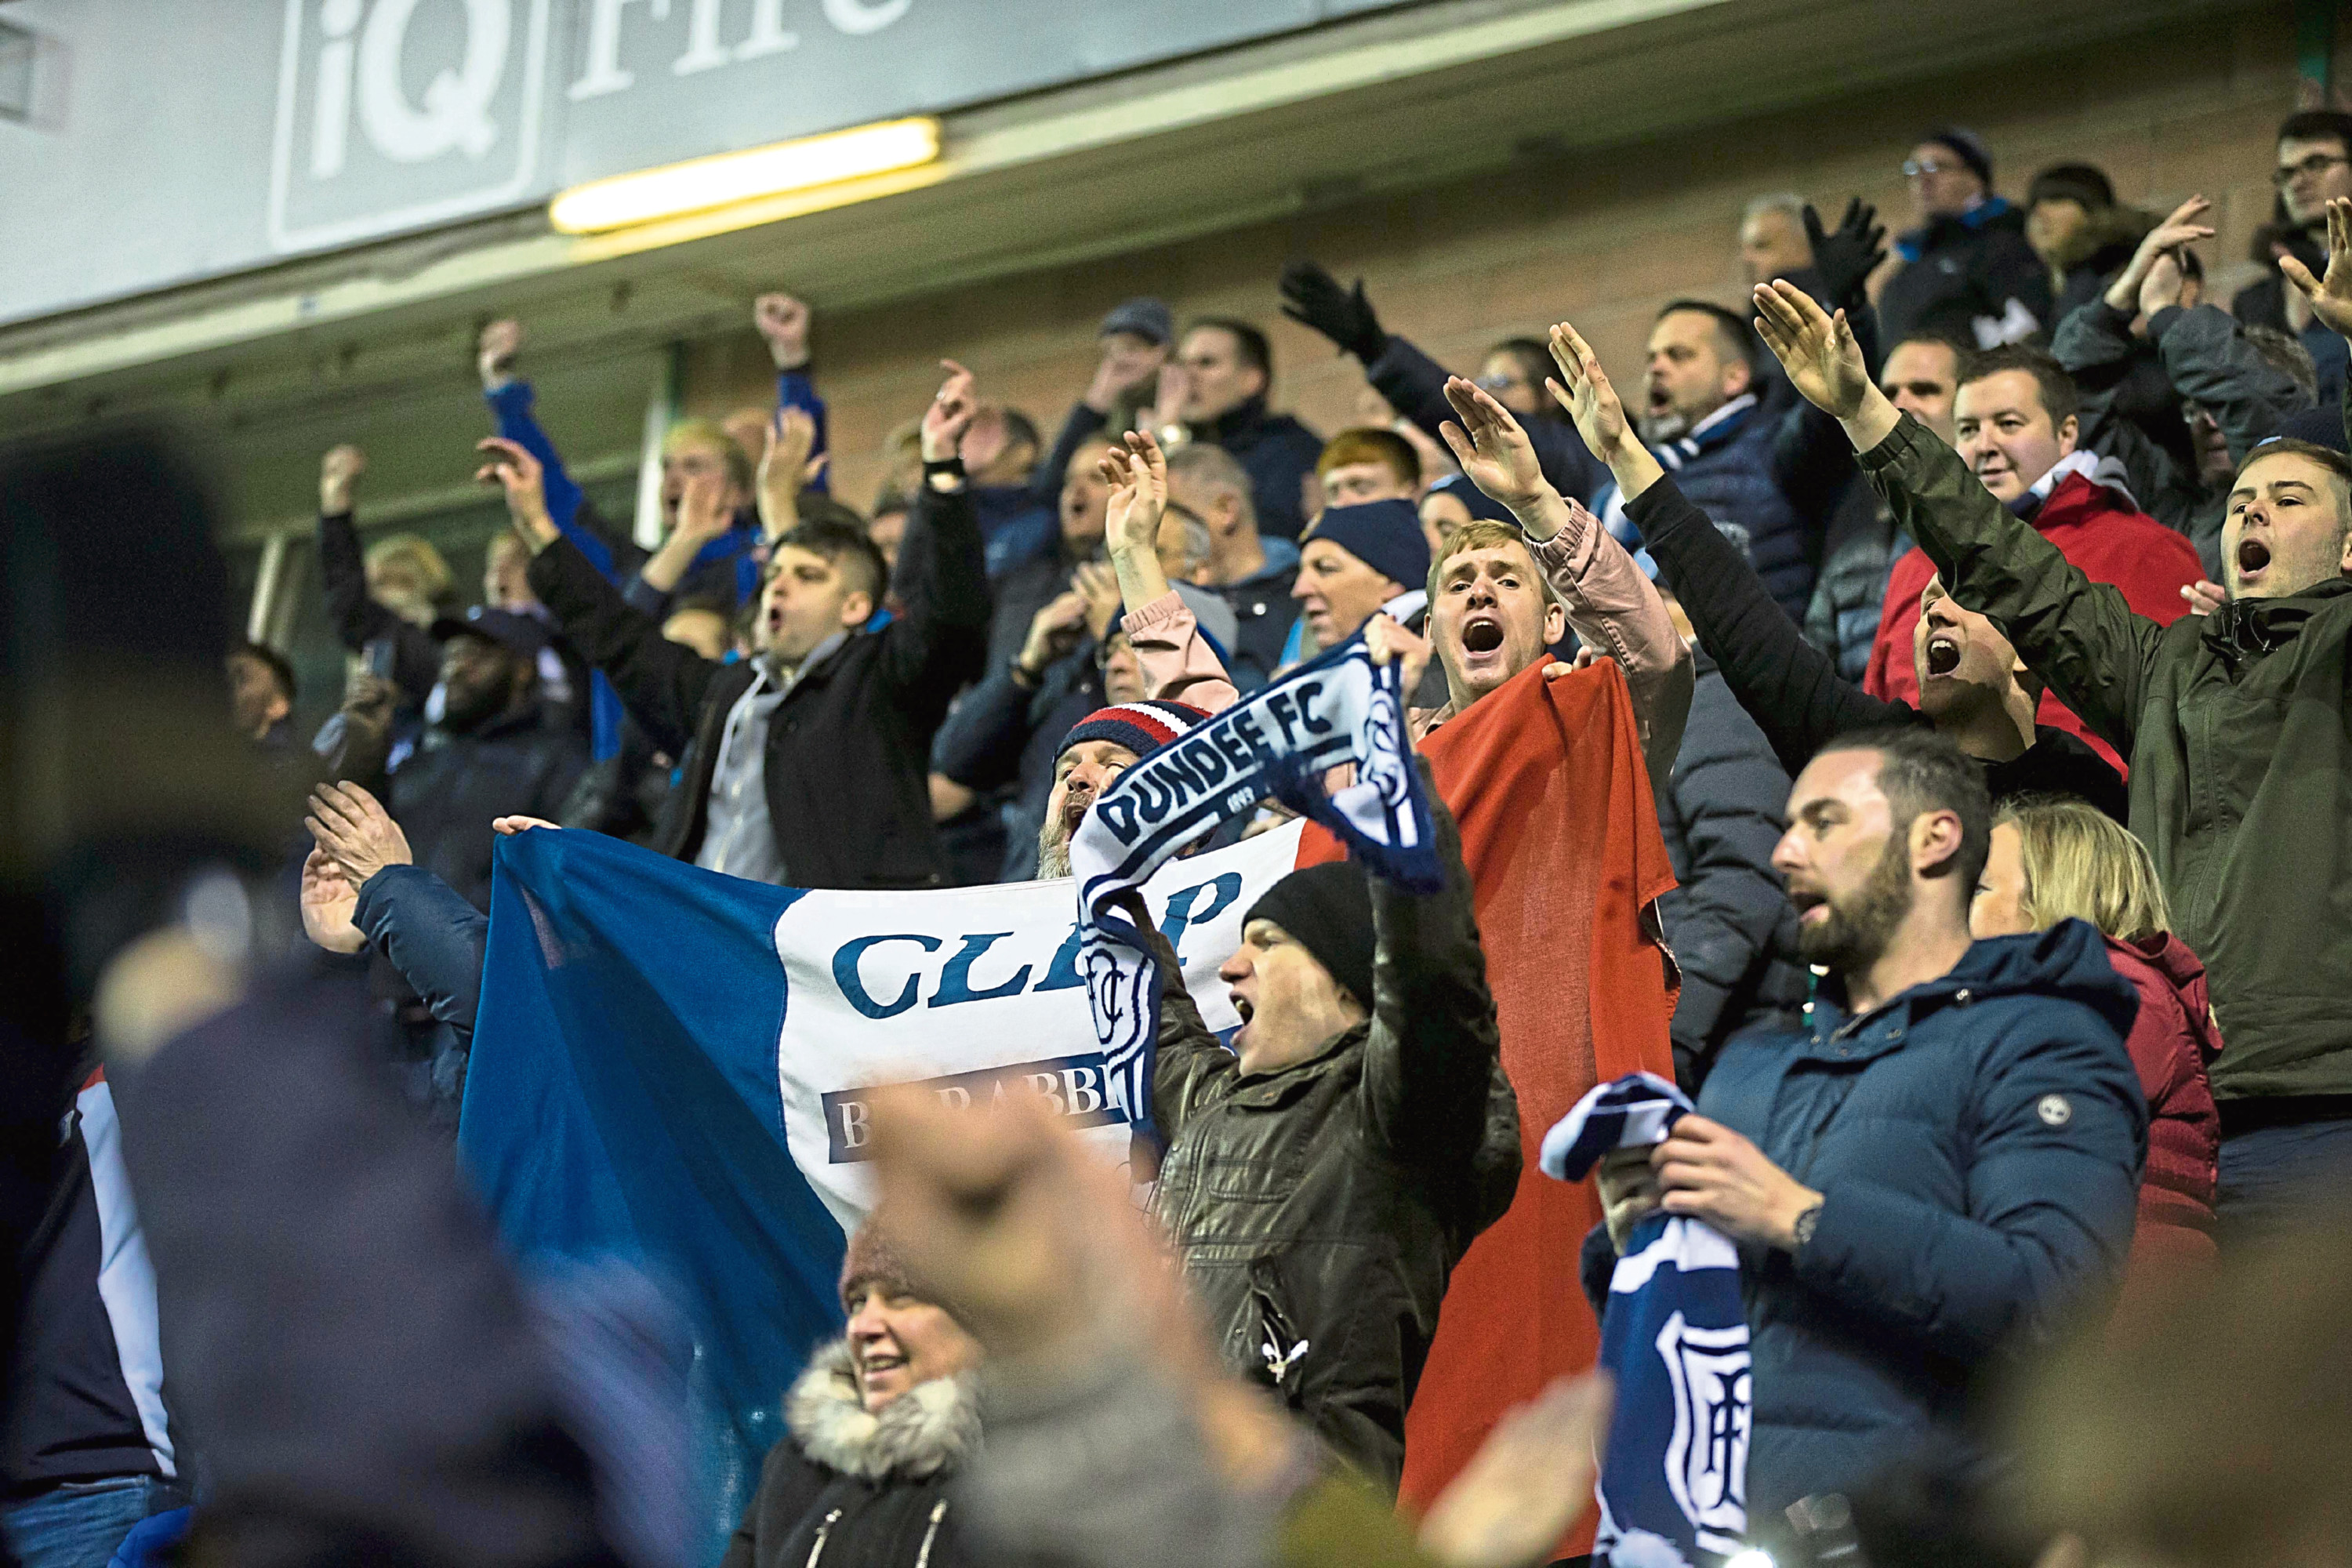 Dundee fans will be out in force this weekend.